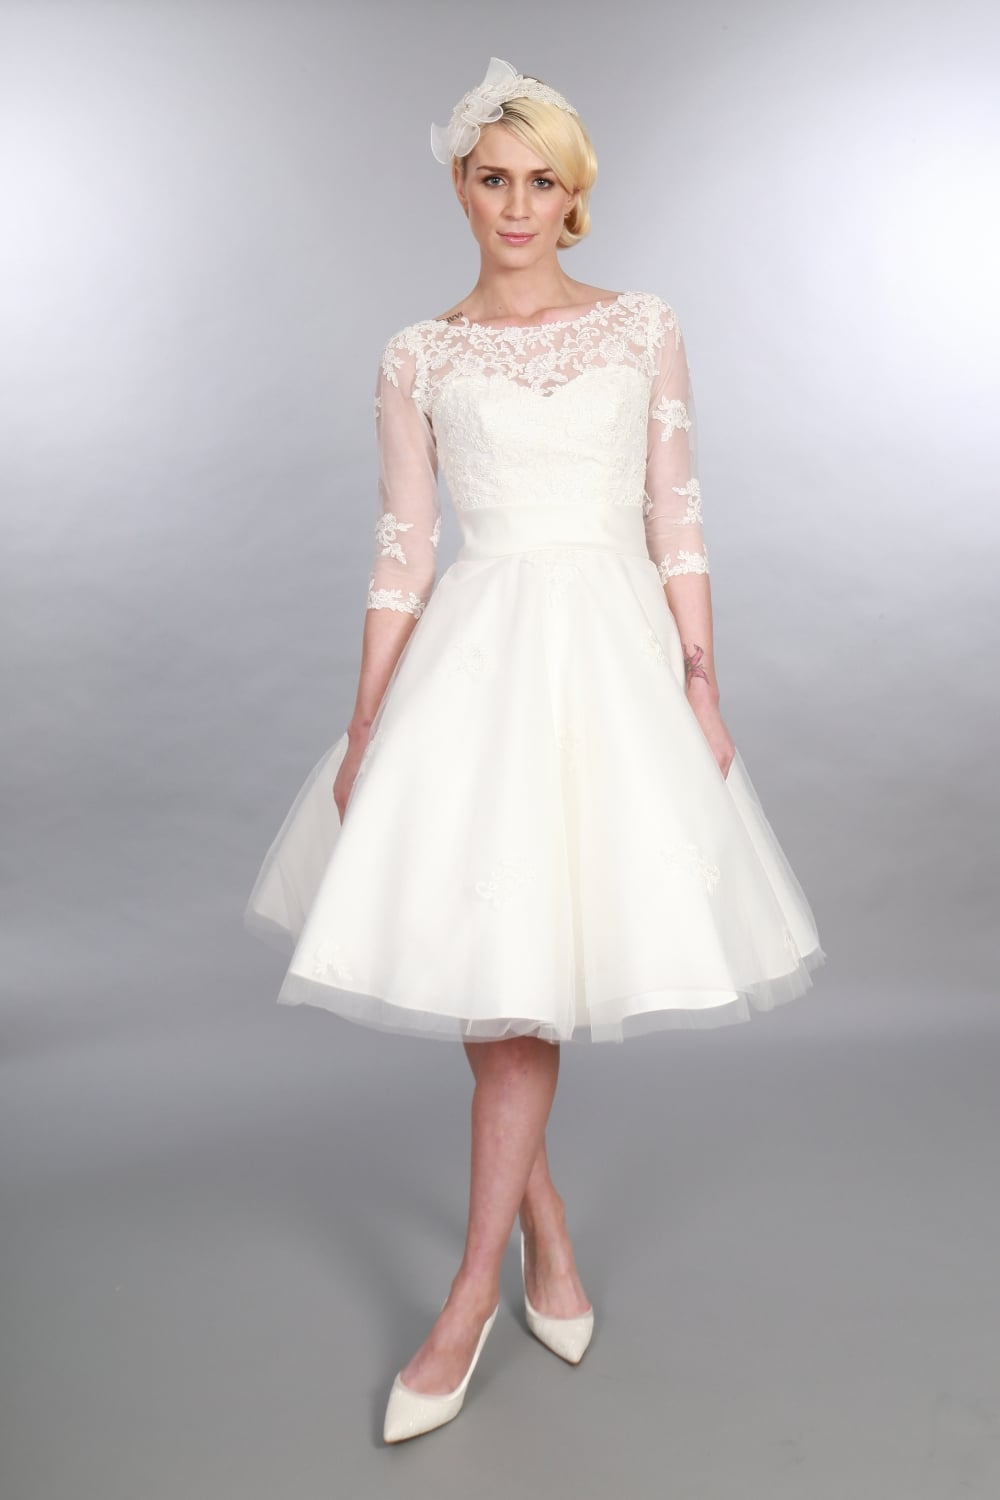 POLLY Tea Length 1950s Vintage Style Wedding Dress